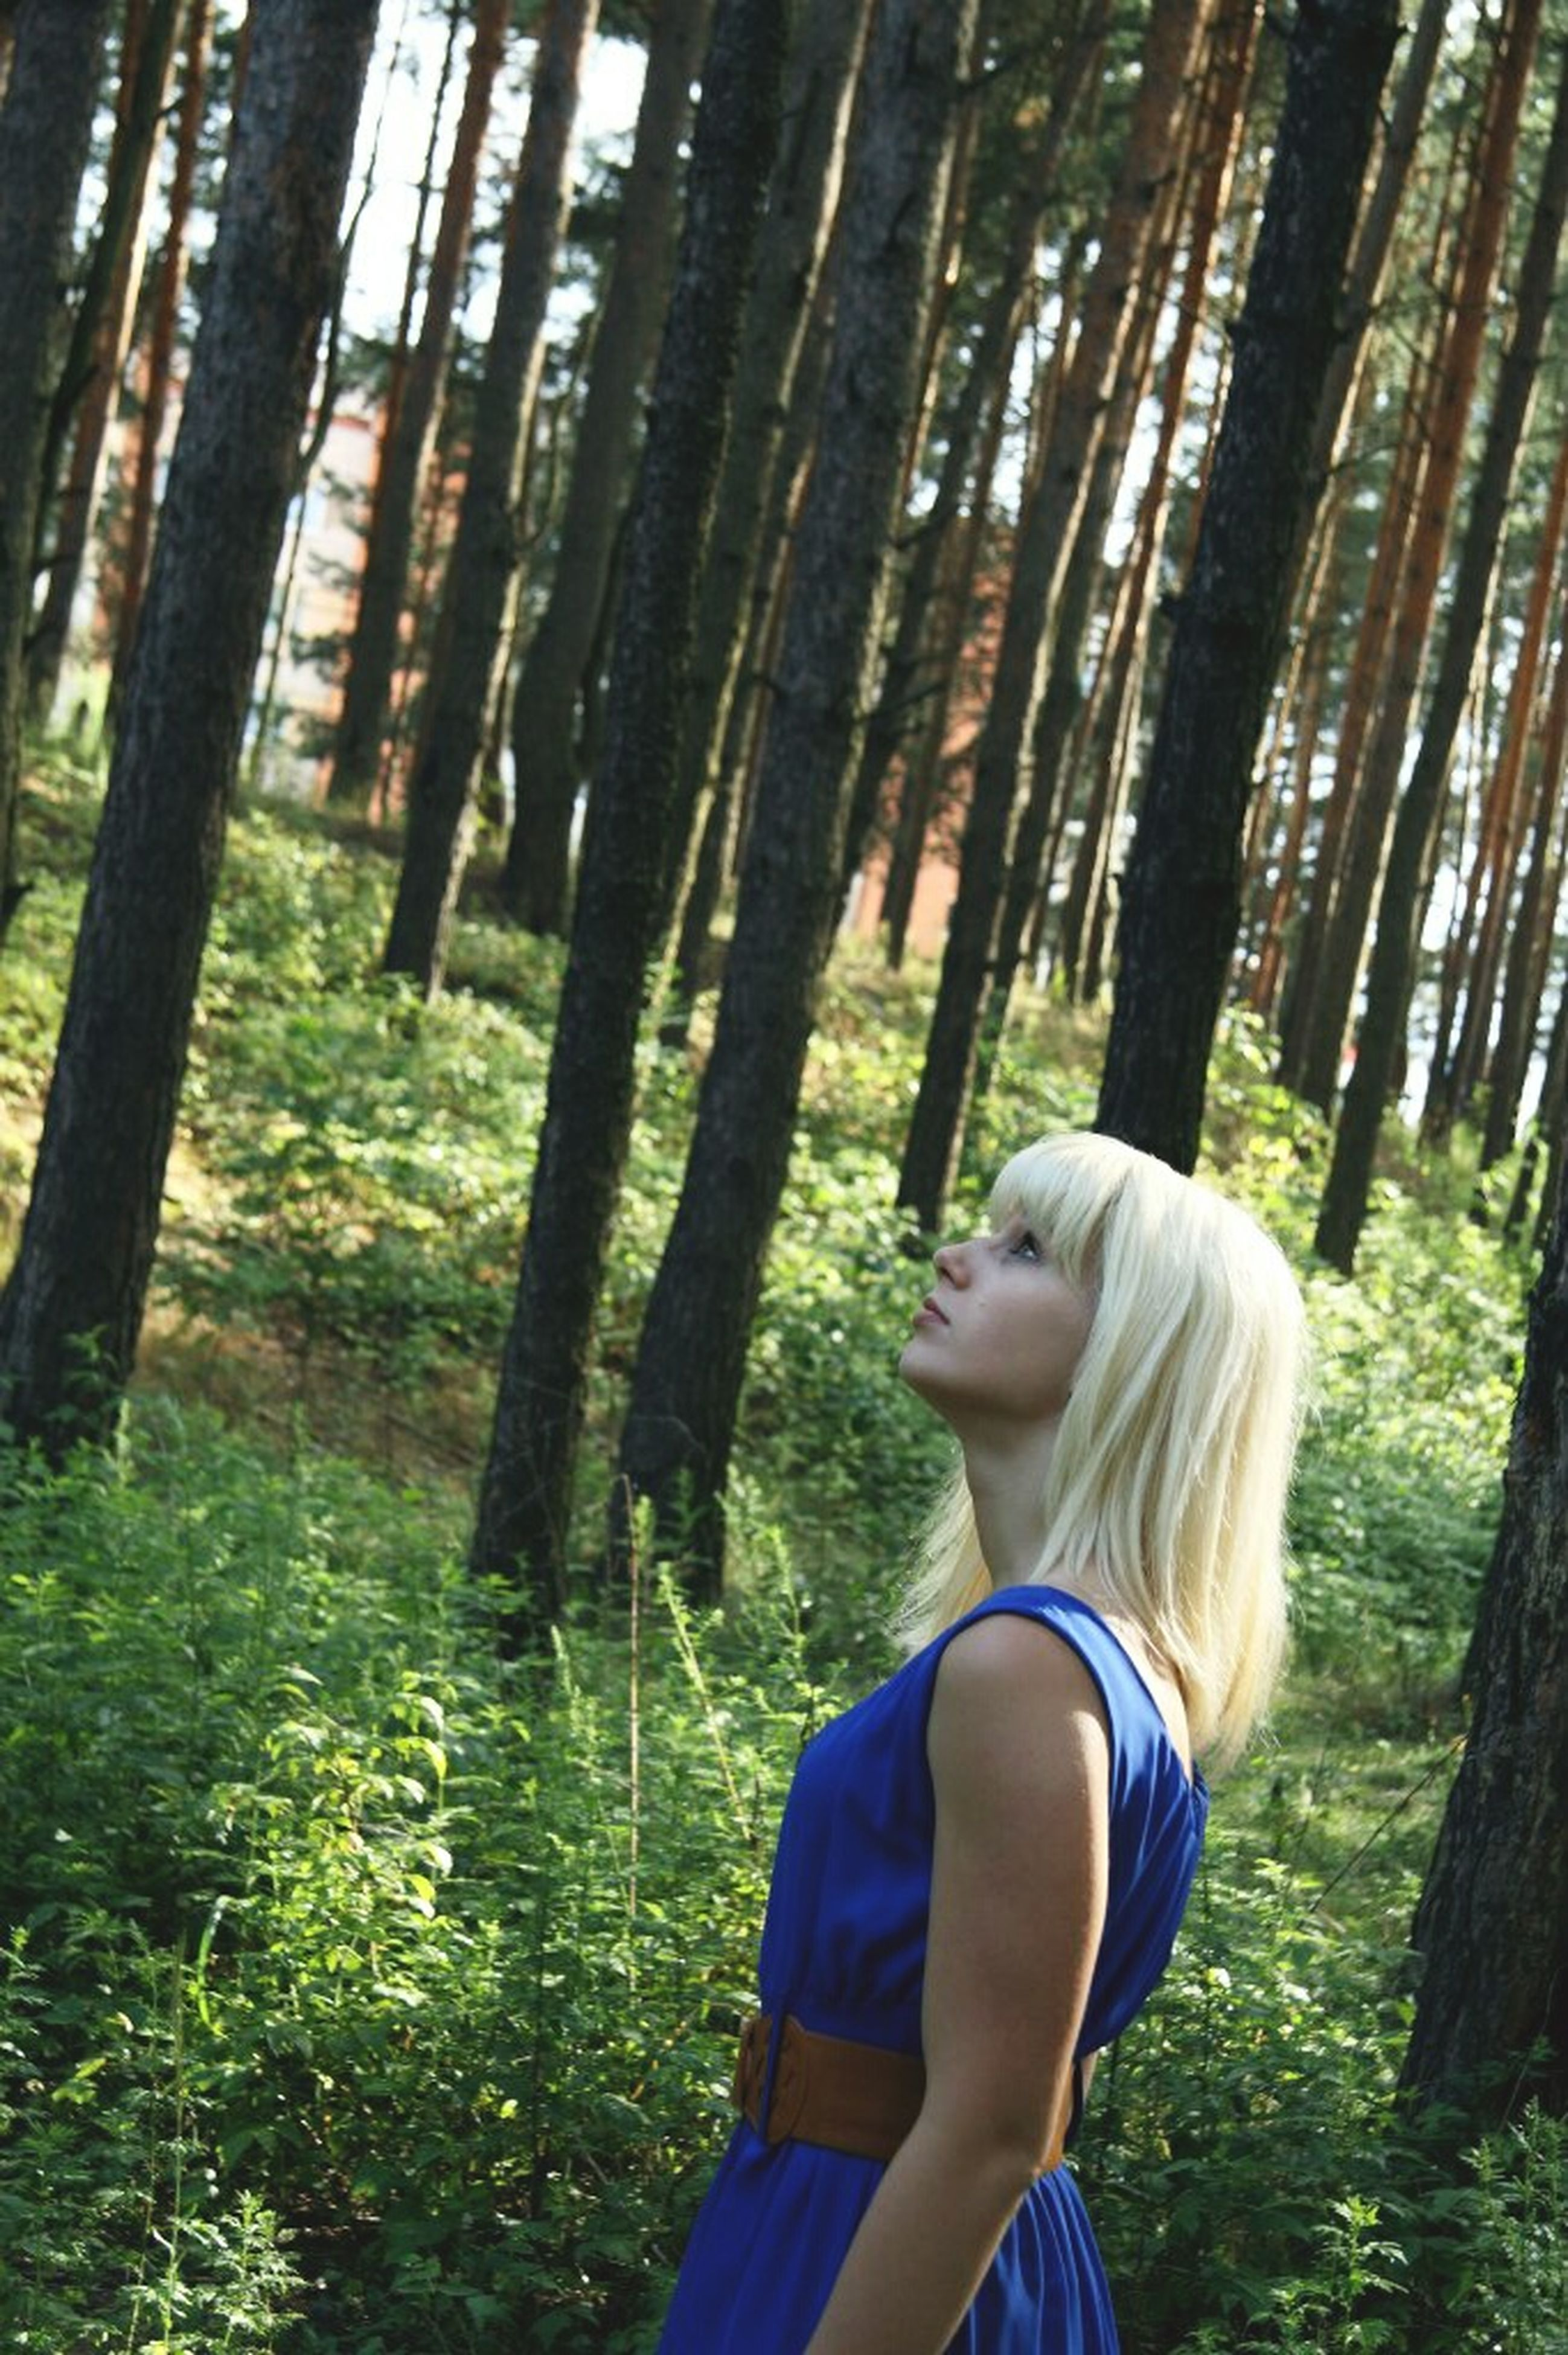 tree, lifestyles, leisure activity, casual clothing, tree trunk, young adult, person, three quarter length, sunlight, young women, rear view, forest, standing, long hair, grass, waist up, growth